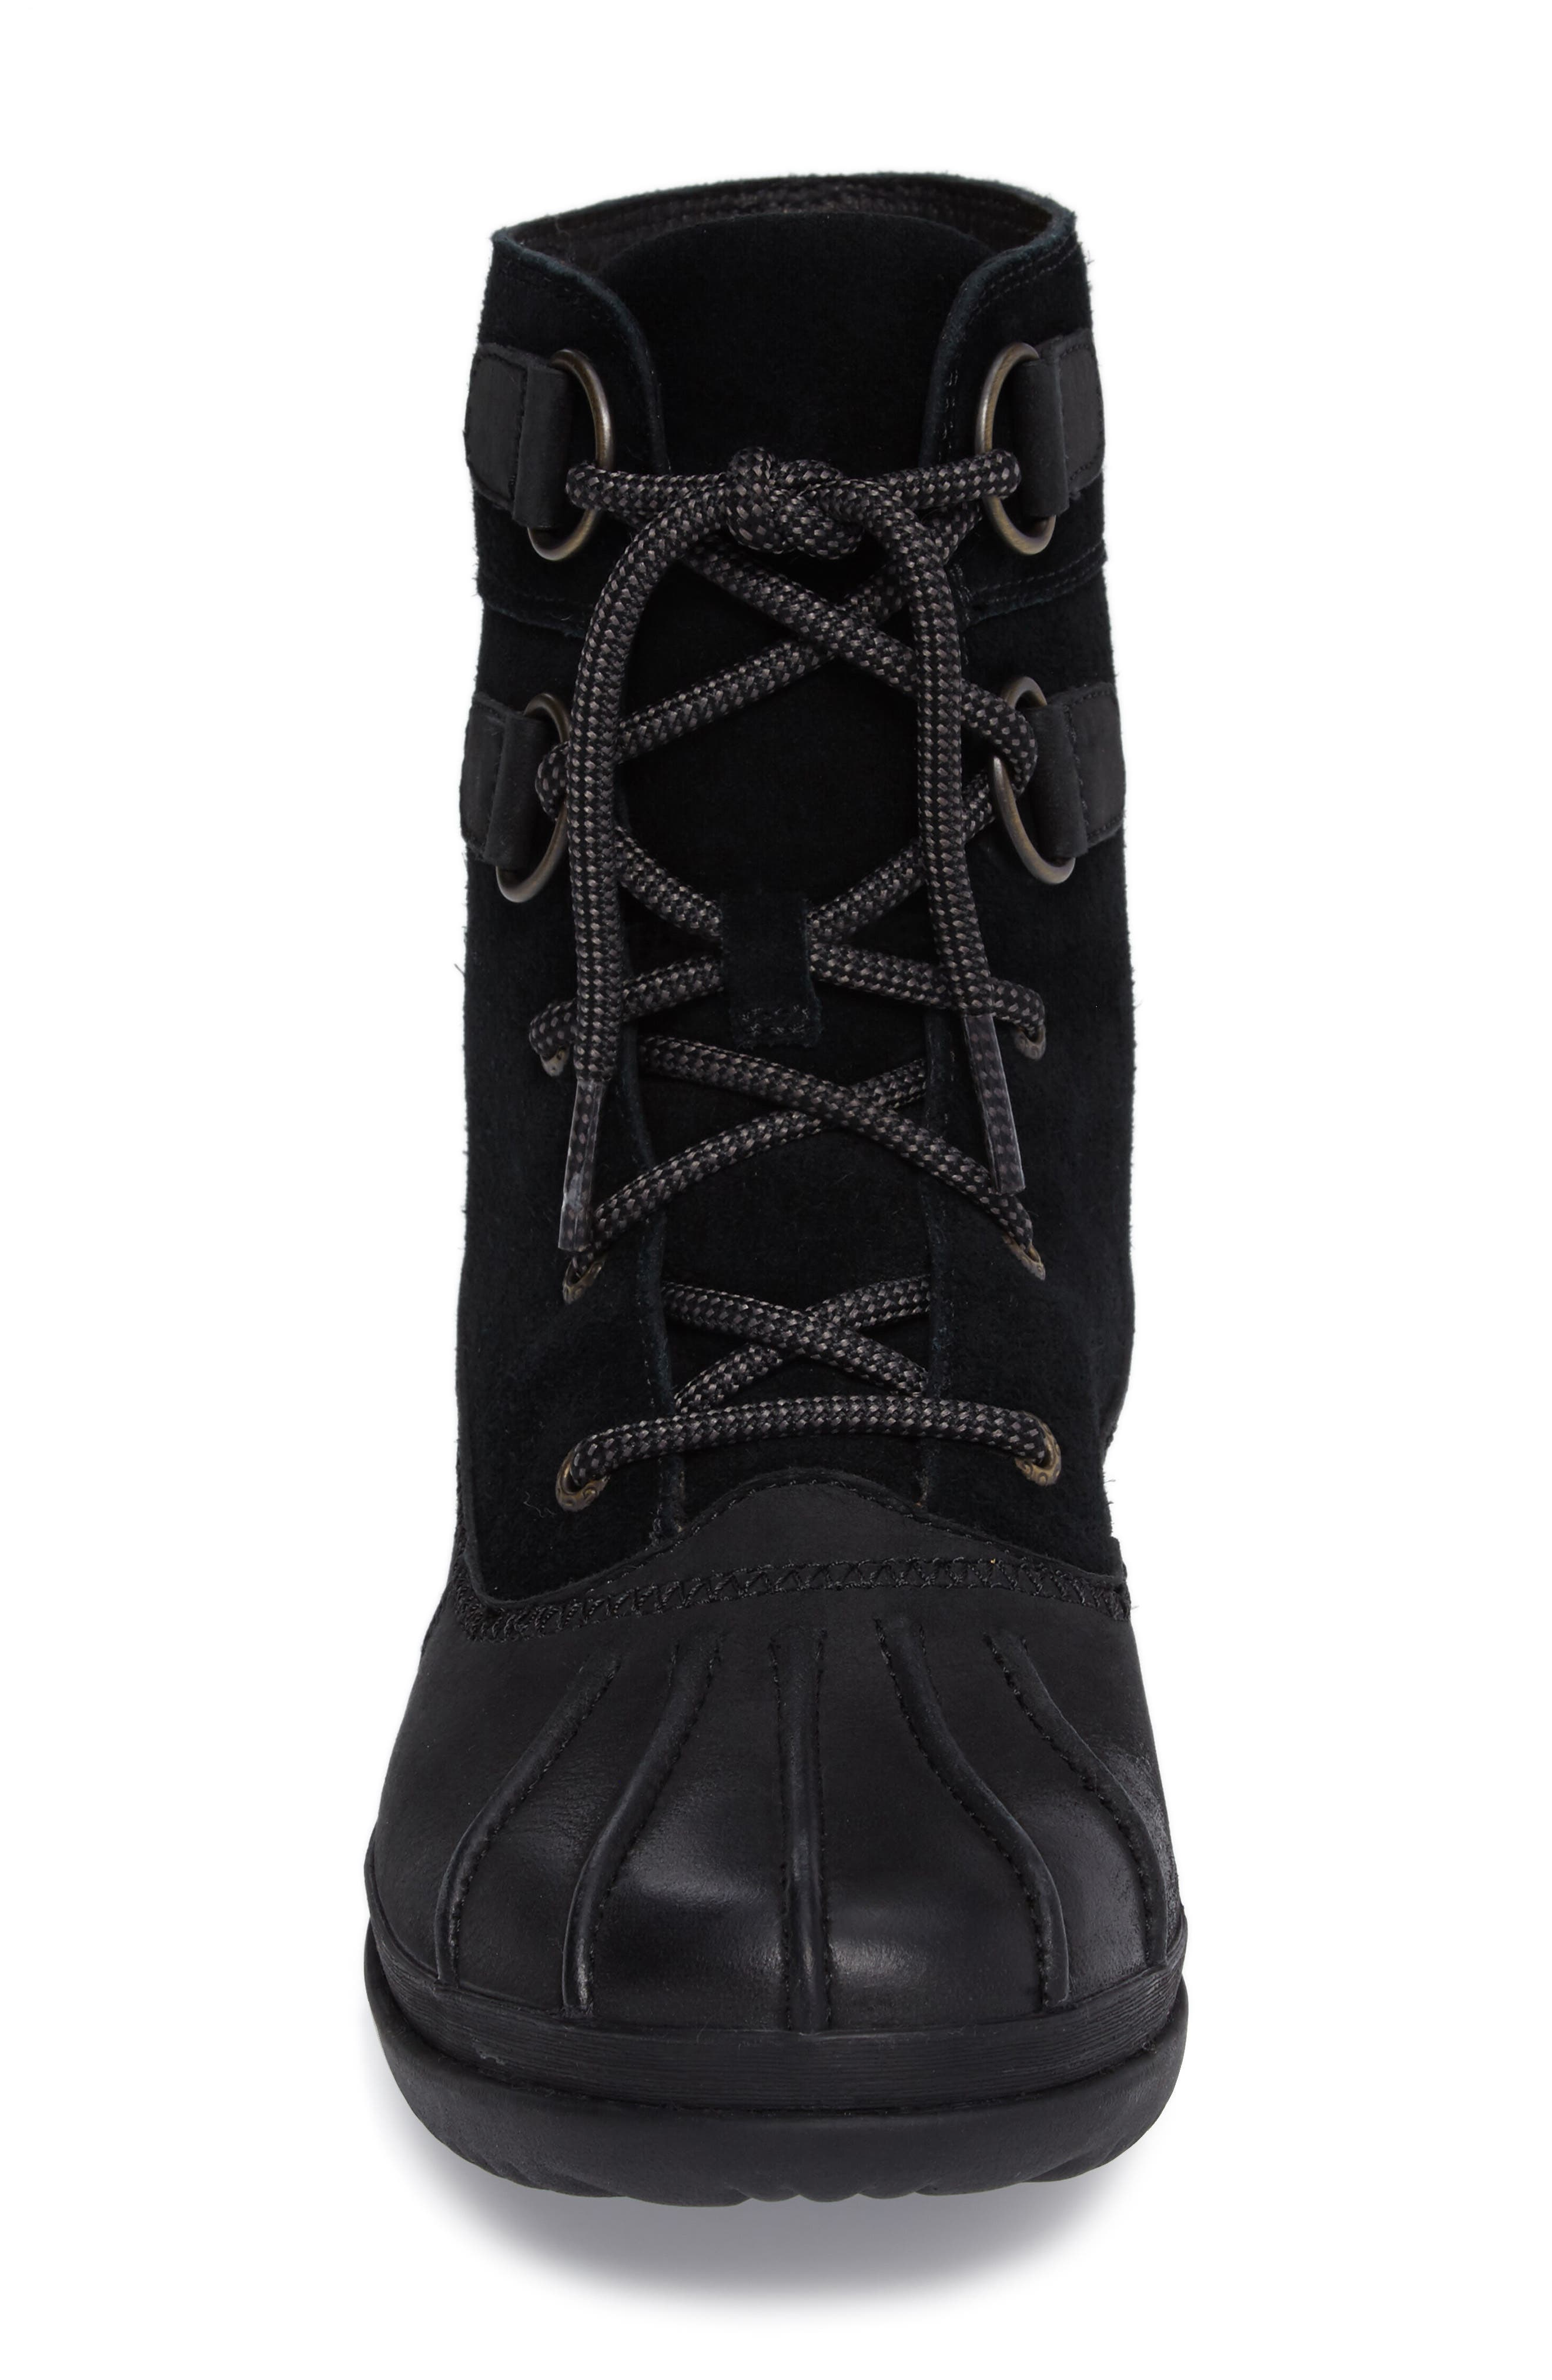 Azaria Waterproof Boot,                             Alternate thumbnail 4, color,                             Black Leather